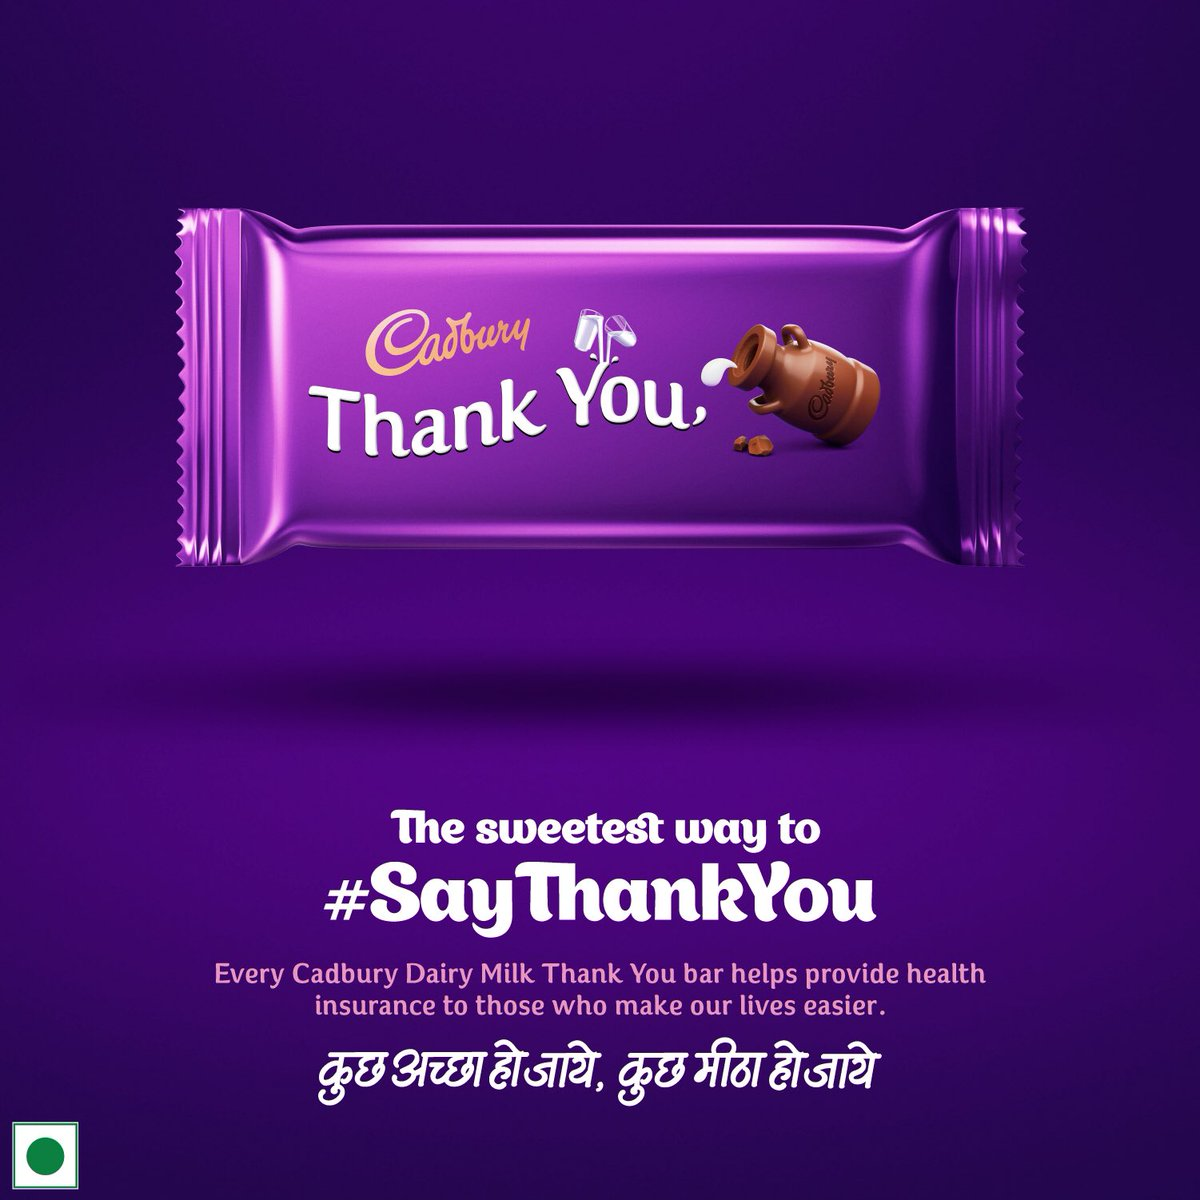 Our lives are easier because they are in it. Here's a chance to #SayThankYou to the ones who take so little and give so much. #KuchAchhaHoJaayeKuchMeethaHoJaaye #Cadbury #CadburyDairyMilk https://t.co/WxyvwcKtgv